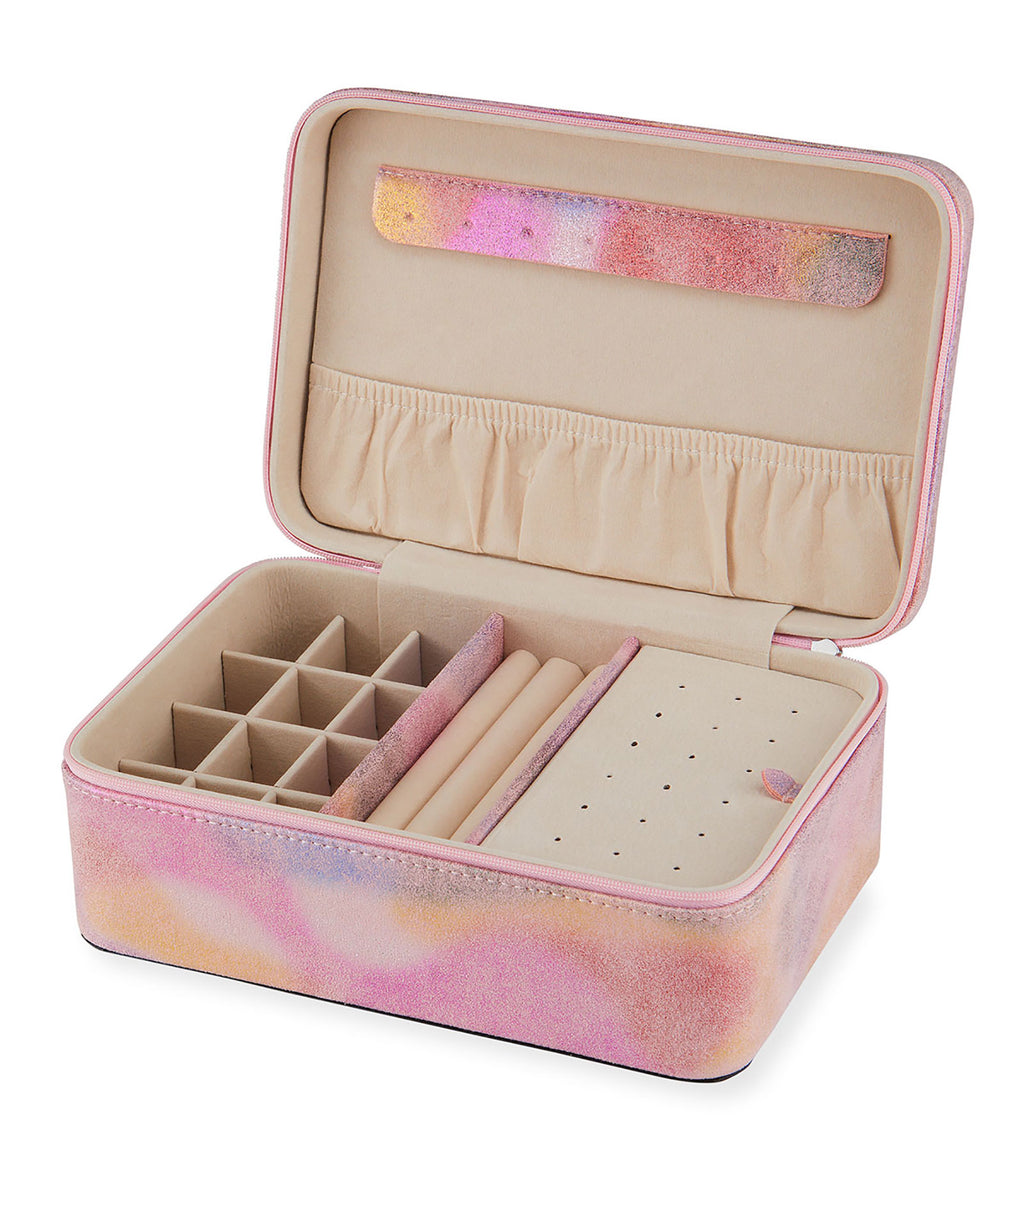 Bari Lynn Iridescent Jewelry Box